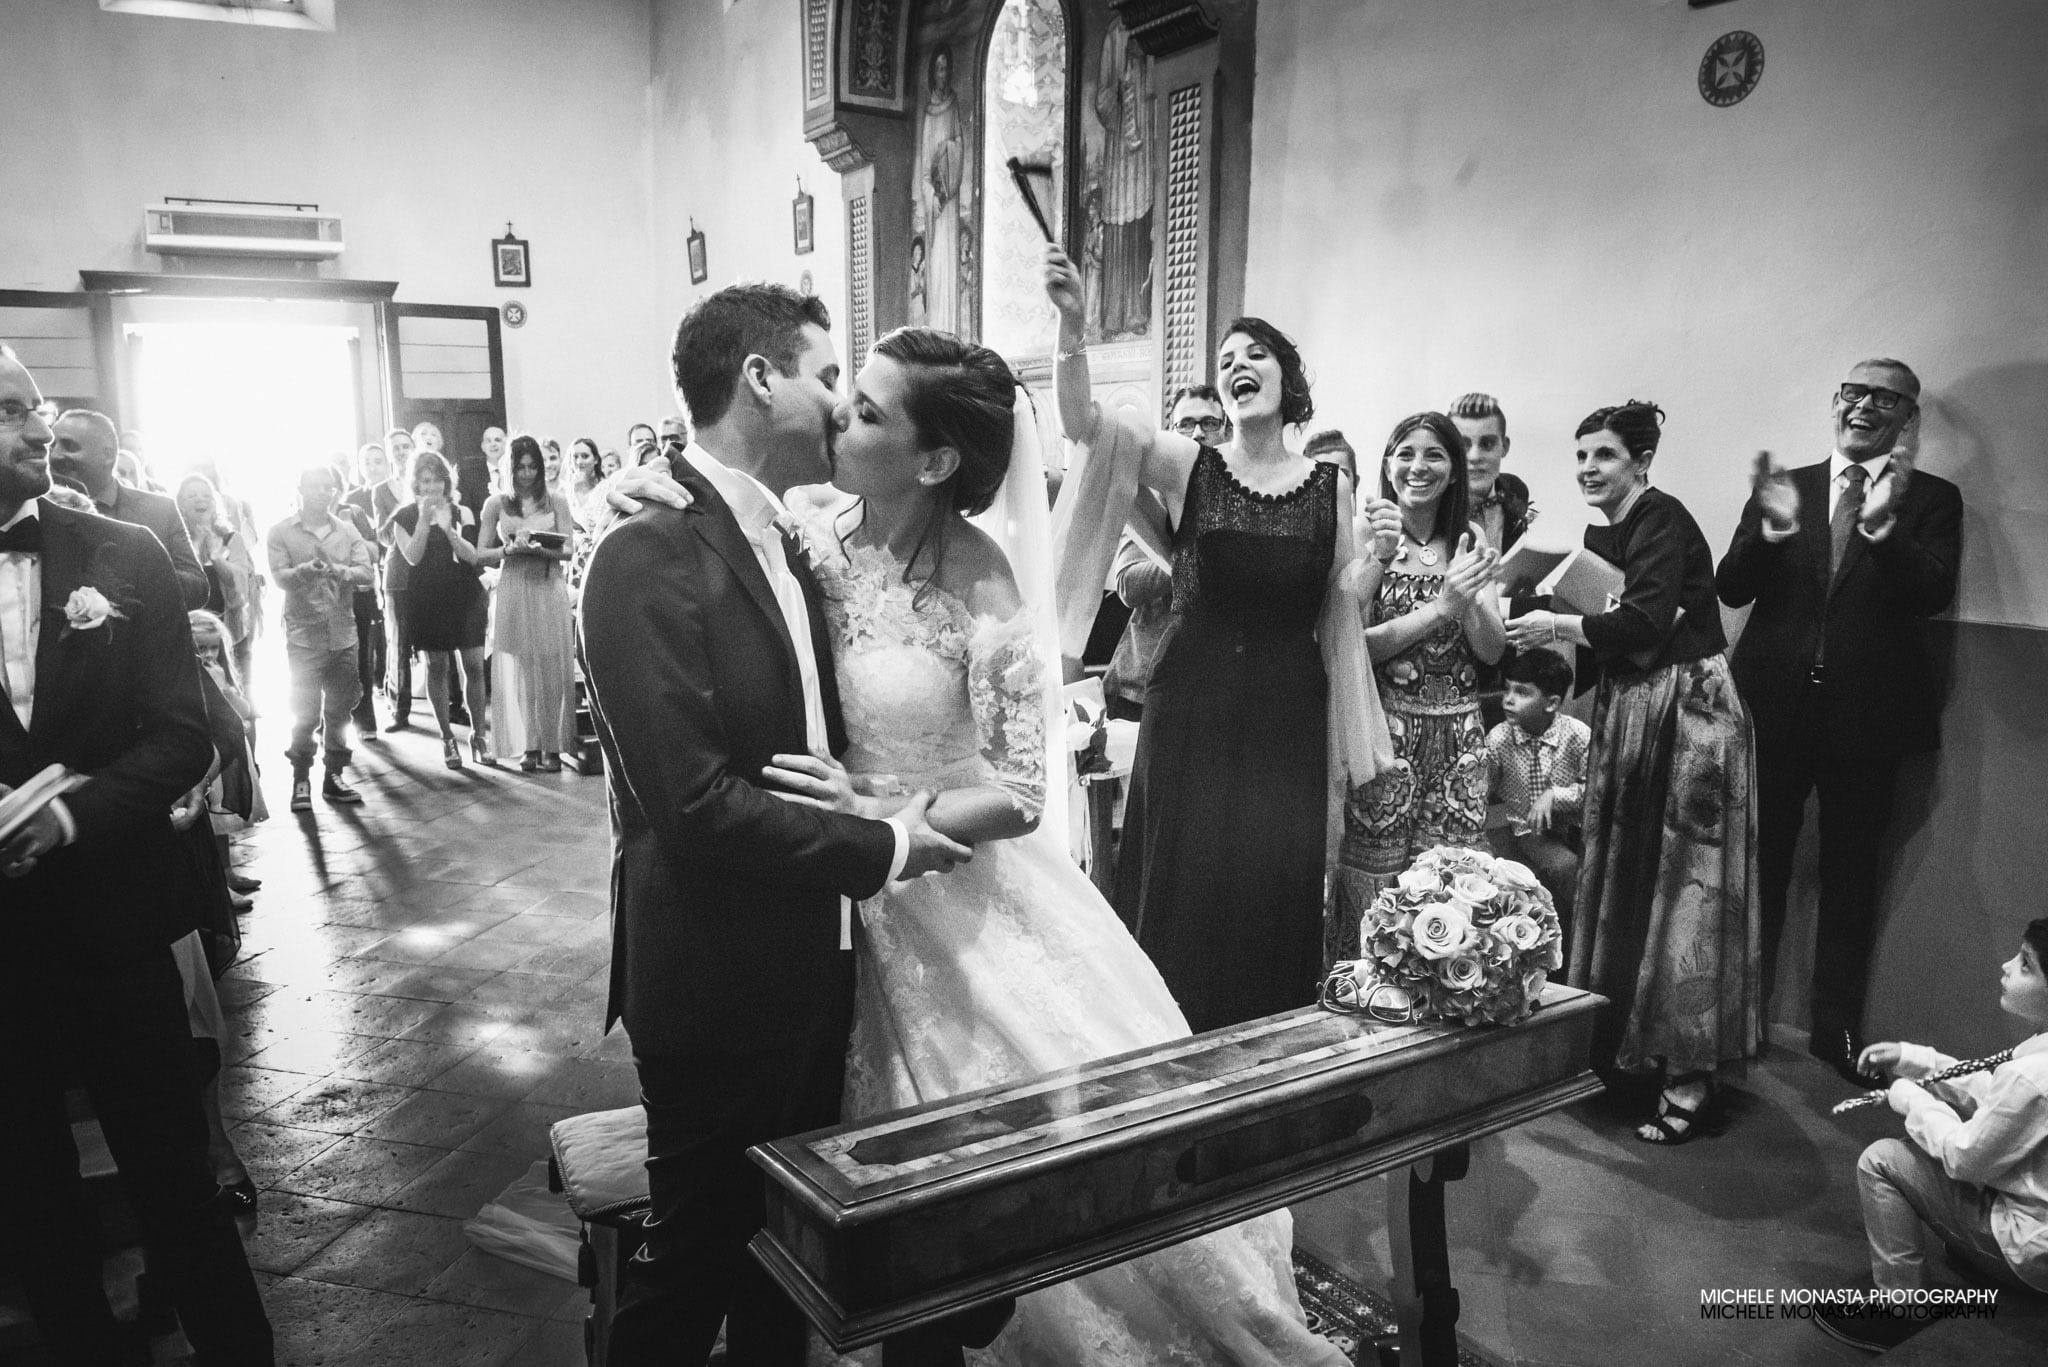 The groom and the bride kiss as soon as they got married in the church italian wedding in tuscany